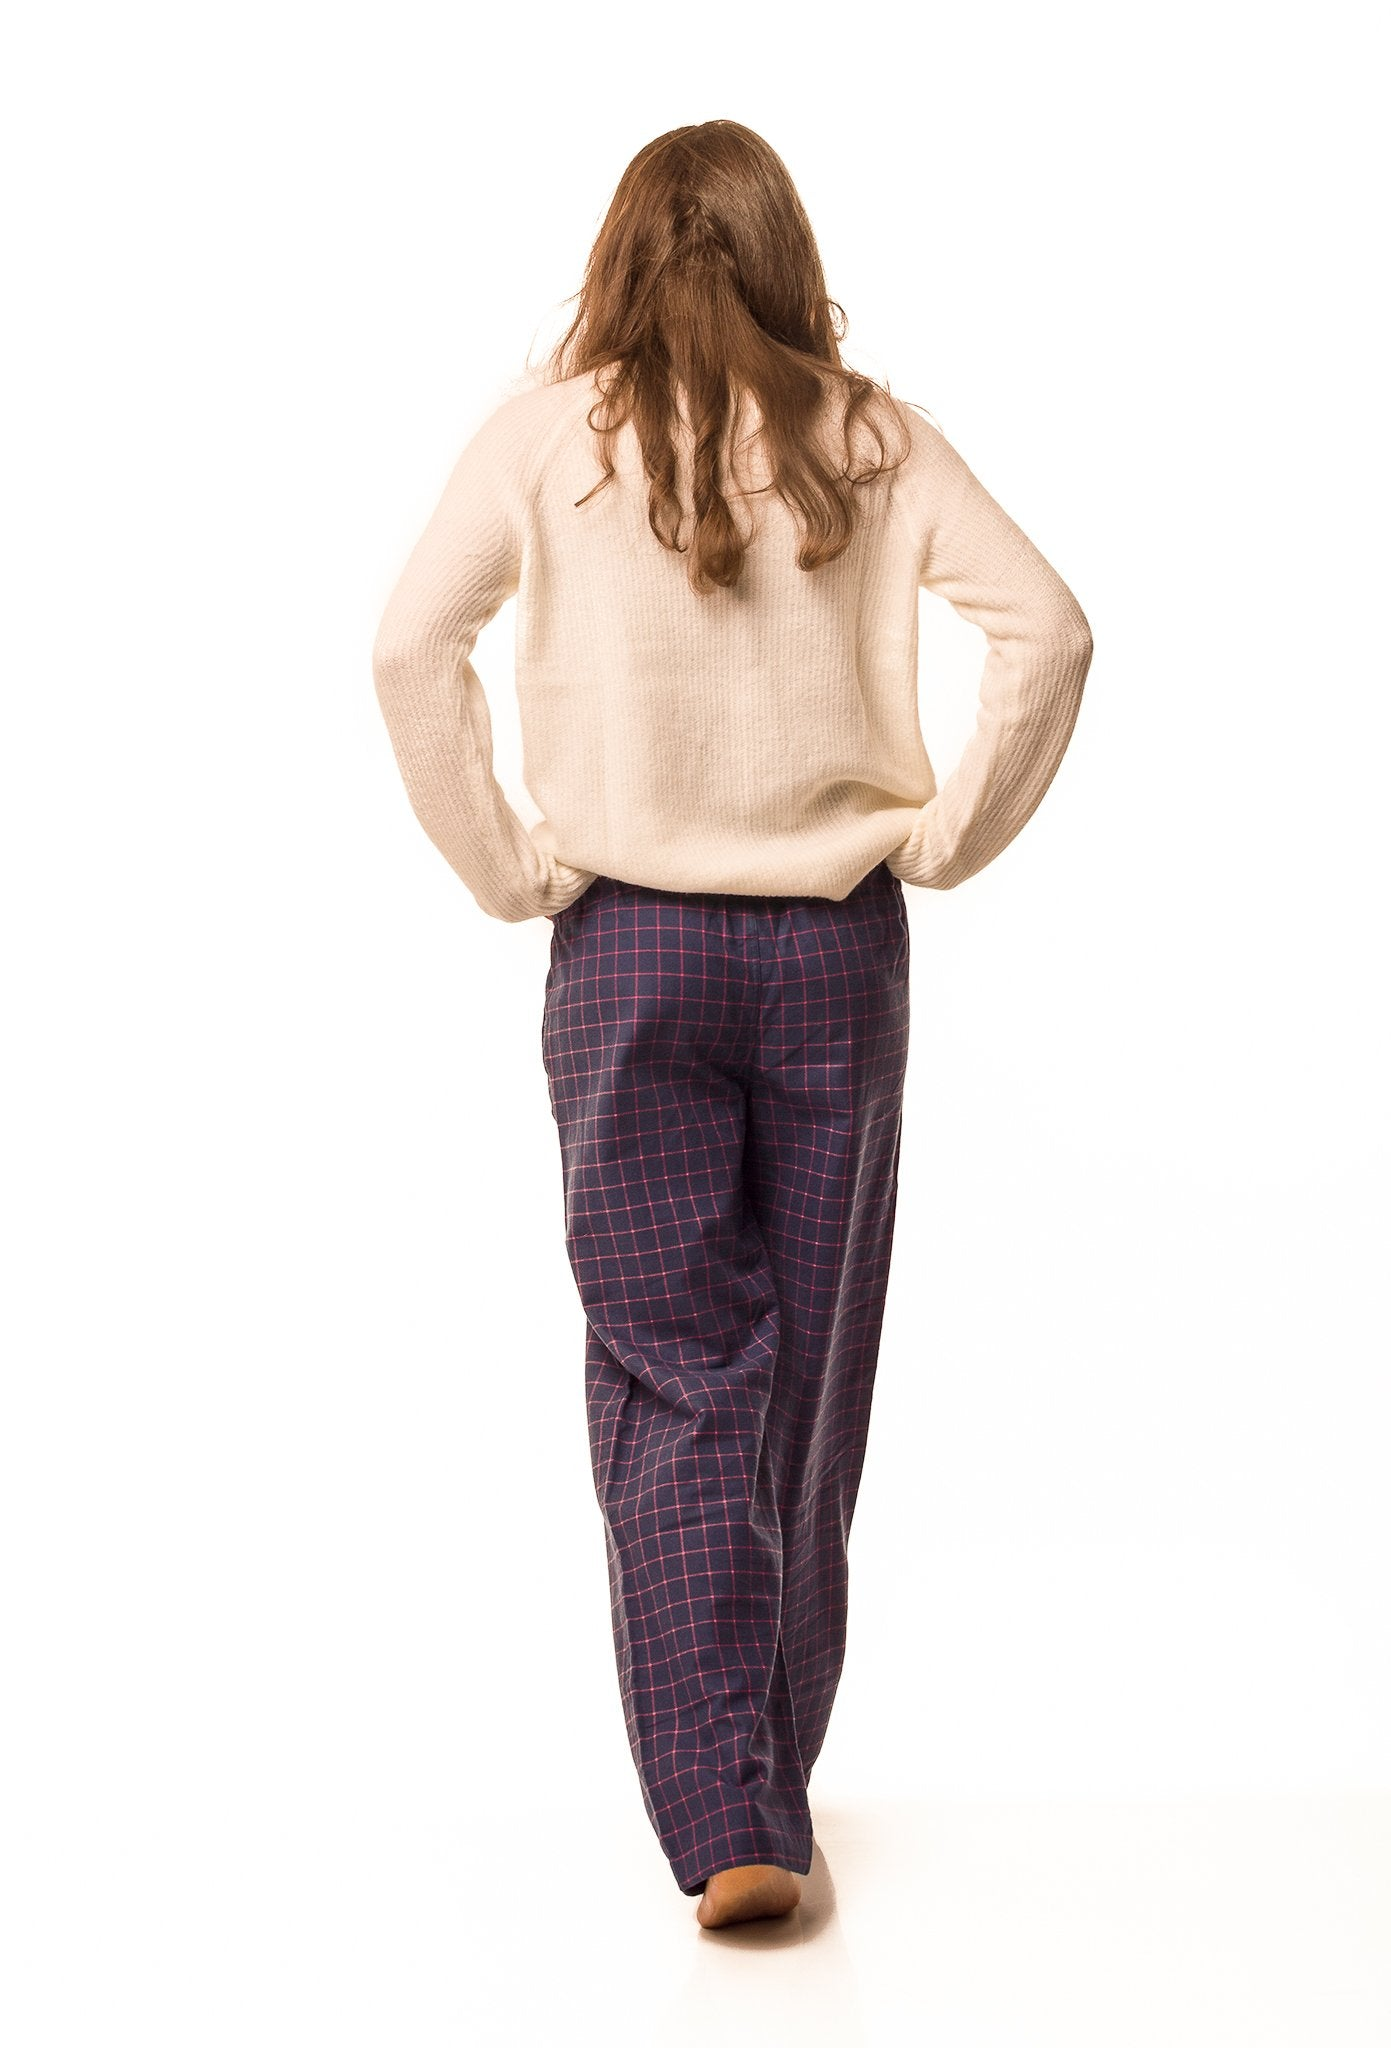 Dever navy blue/fuchsia check lounge pants - Women's